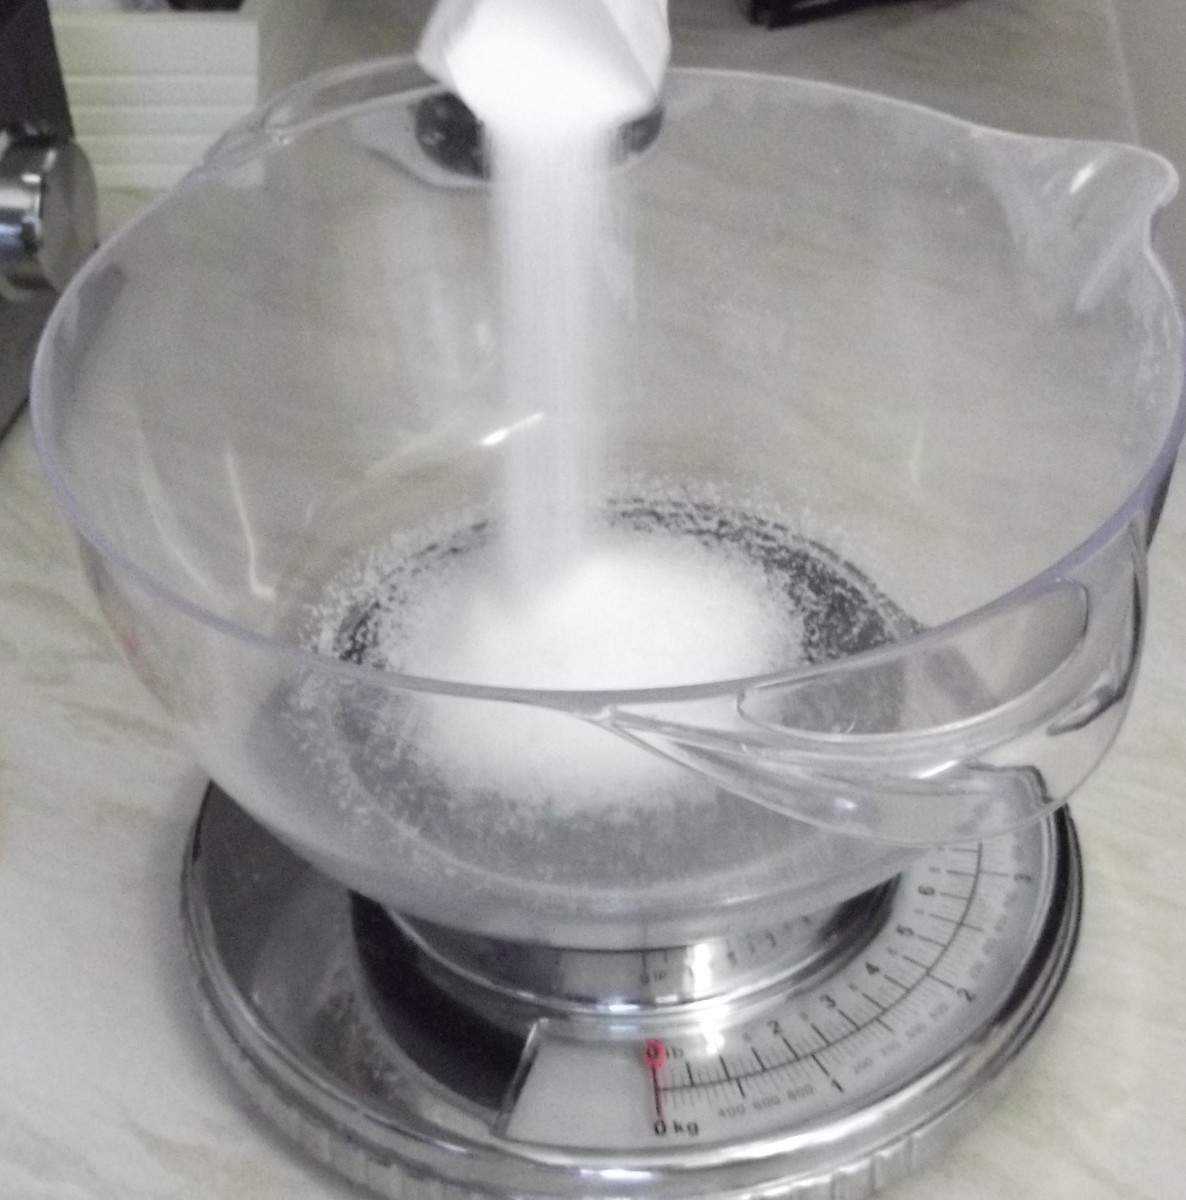 weight the sugar and add to the mixing bowl